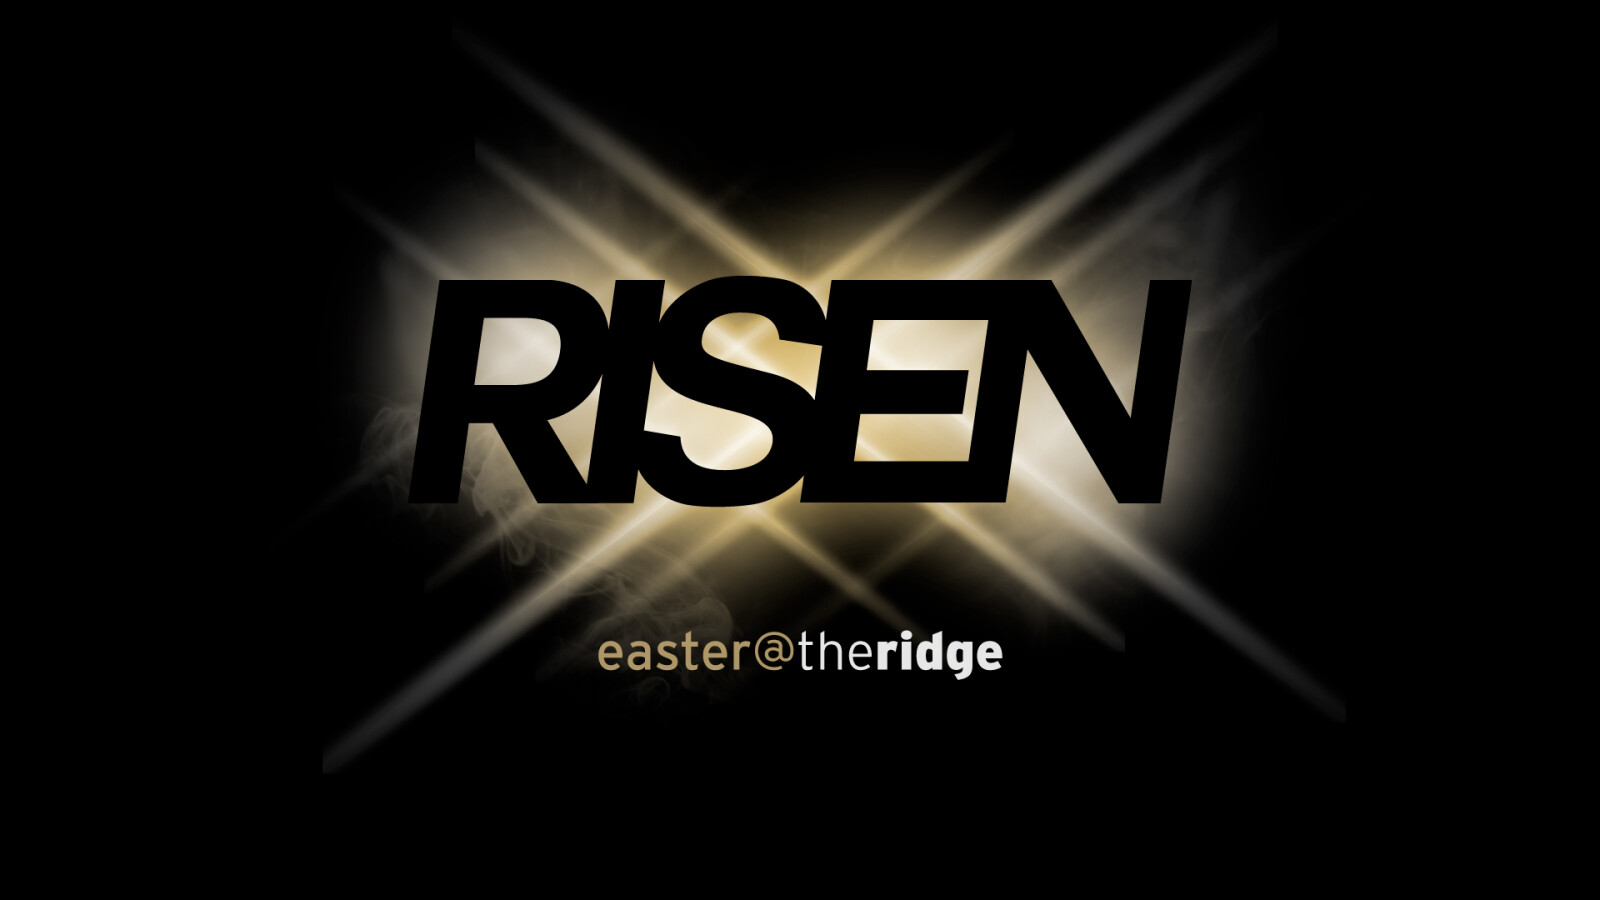 easter@theridge